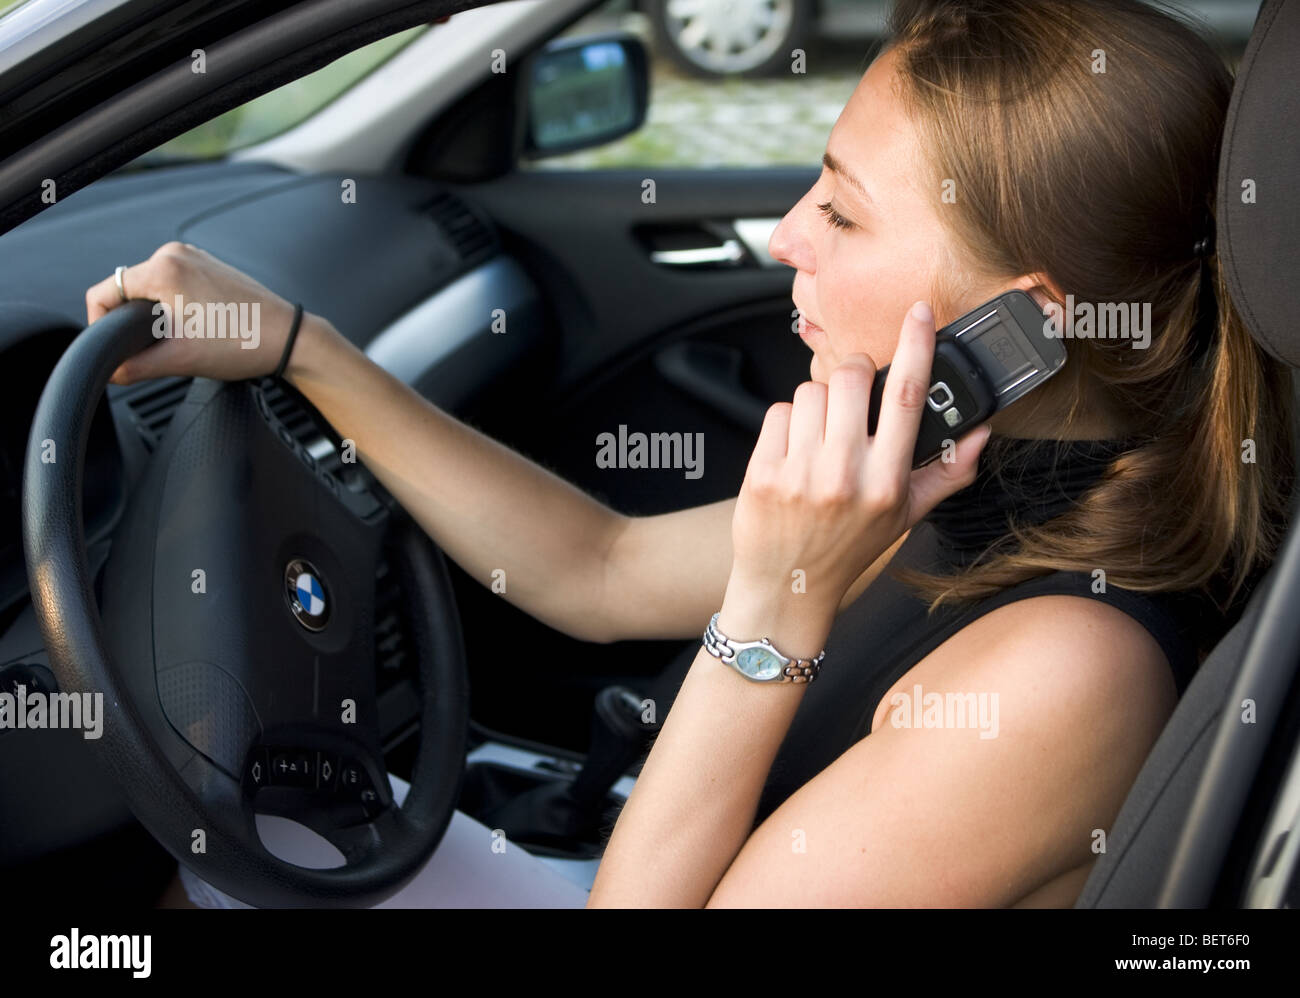 Driver With Mobile Teen 51